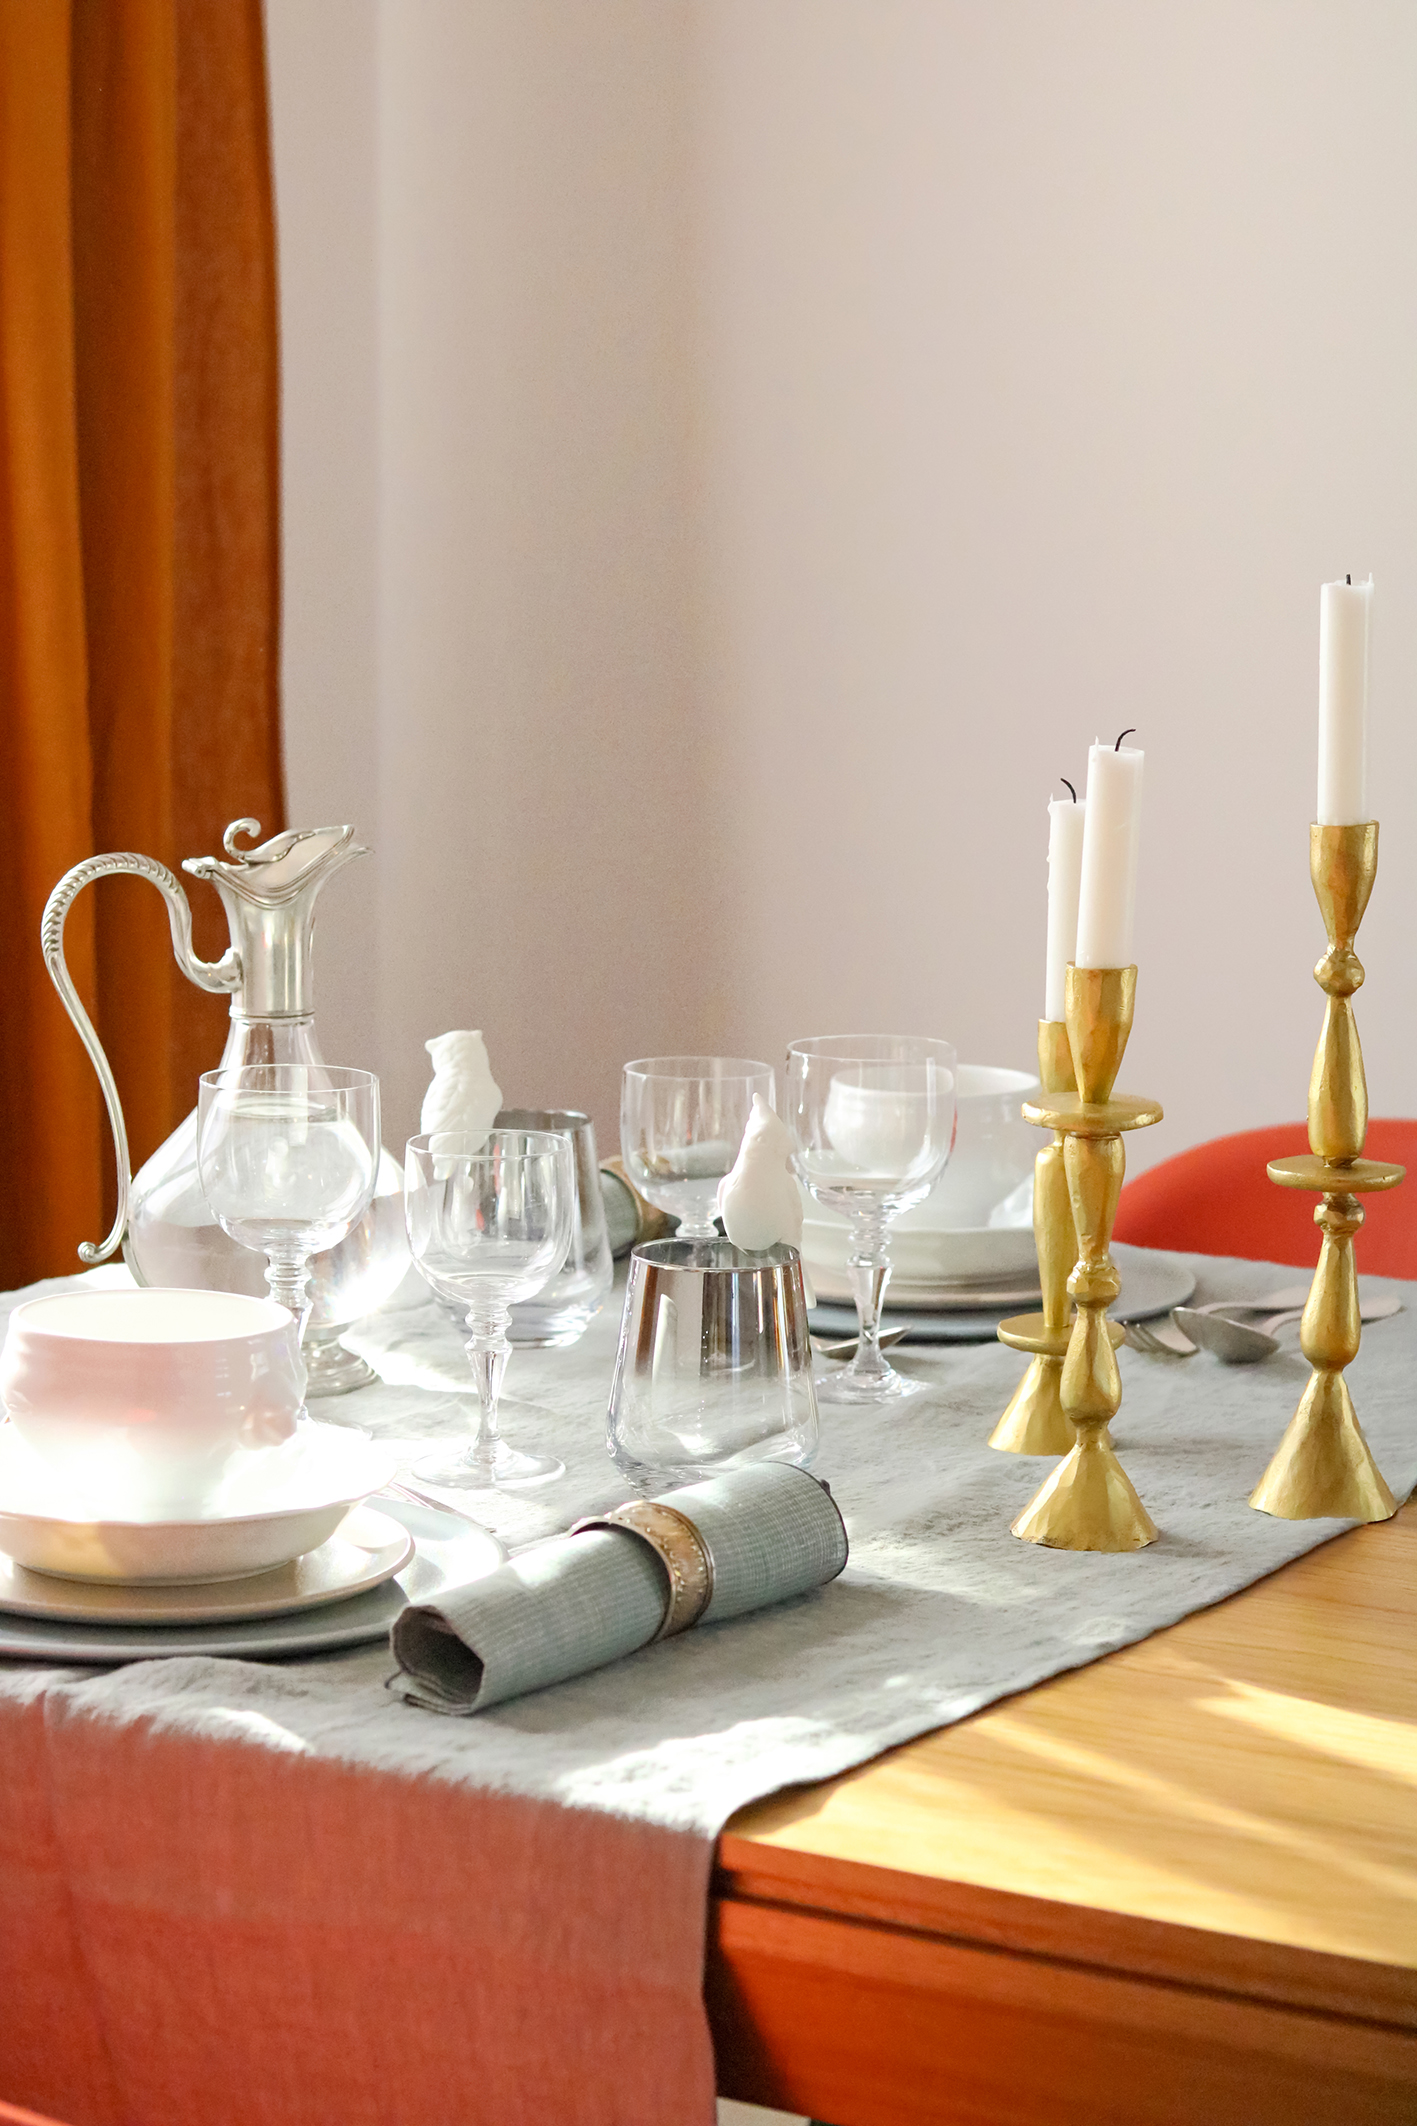 deco-de-table-chic